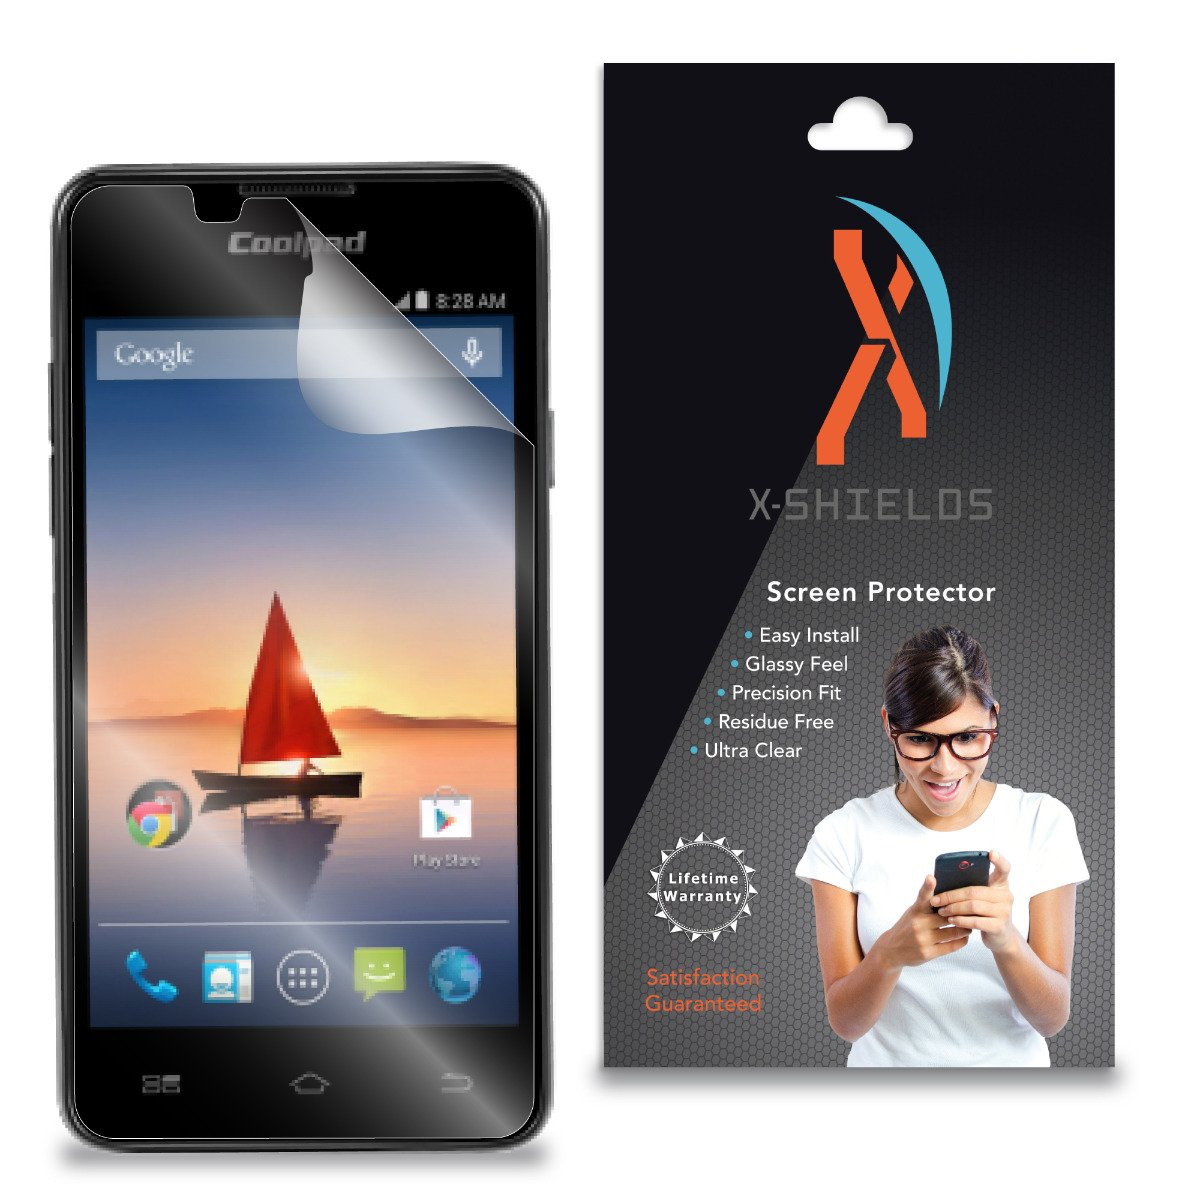 Amazon.com: XShields© (4-Pack) Screen Protectors for Coolpad Arise 5560S  (Ultra Clear): Cell Phones & Accessories